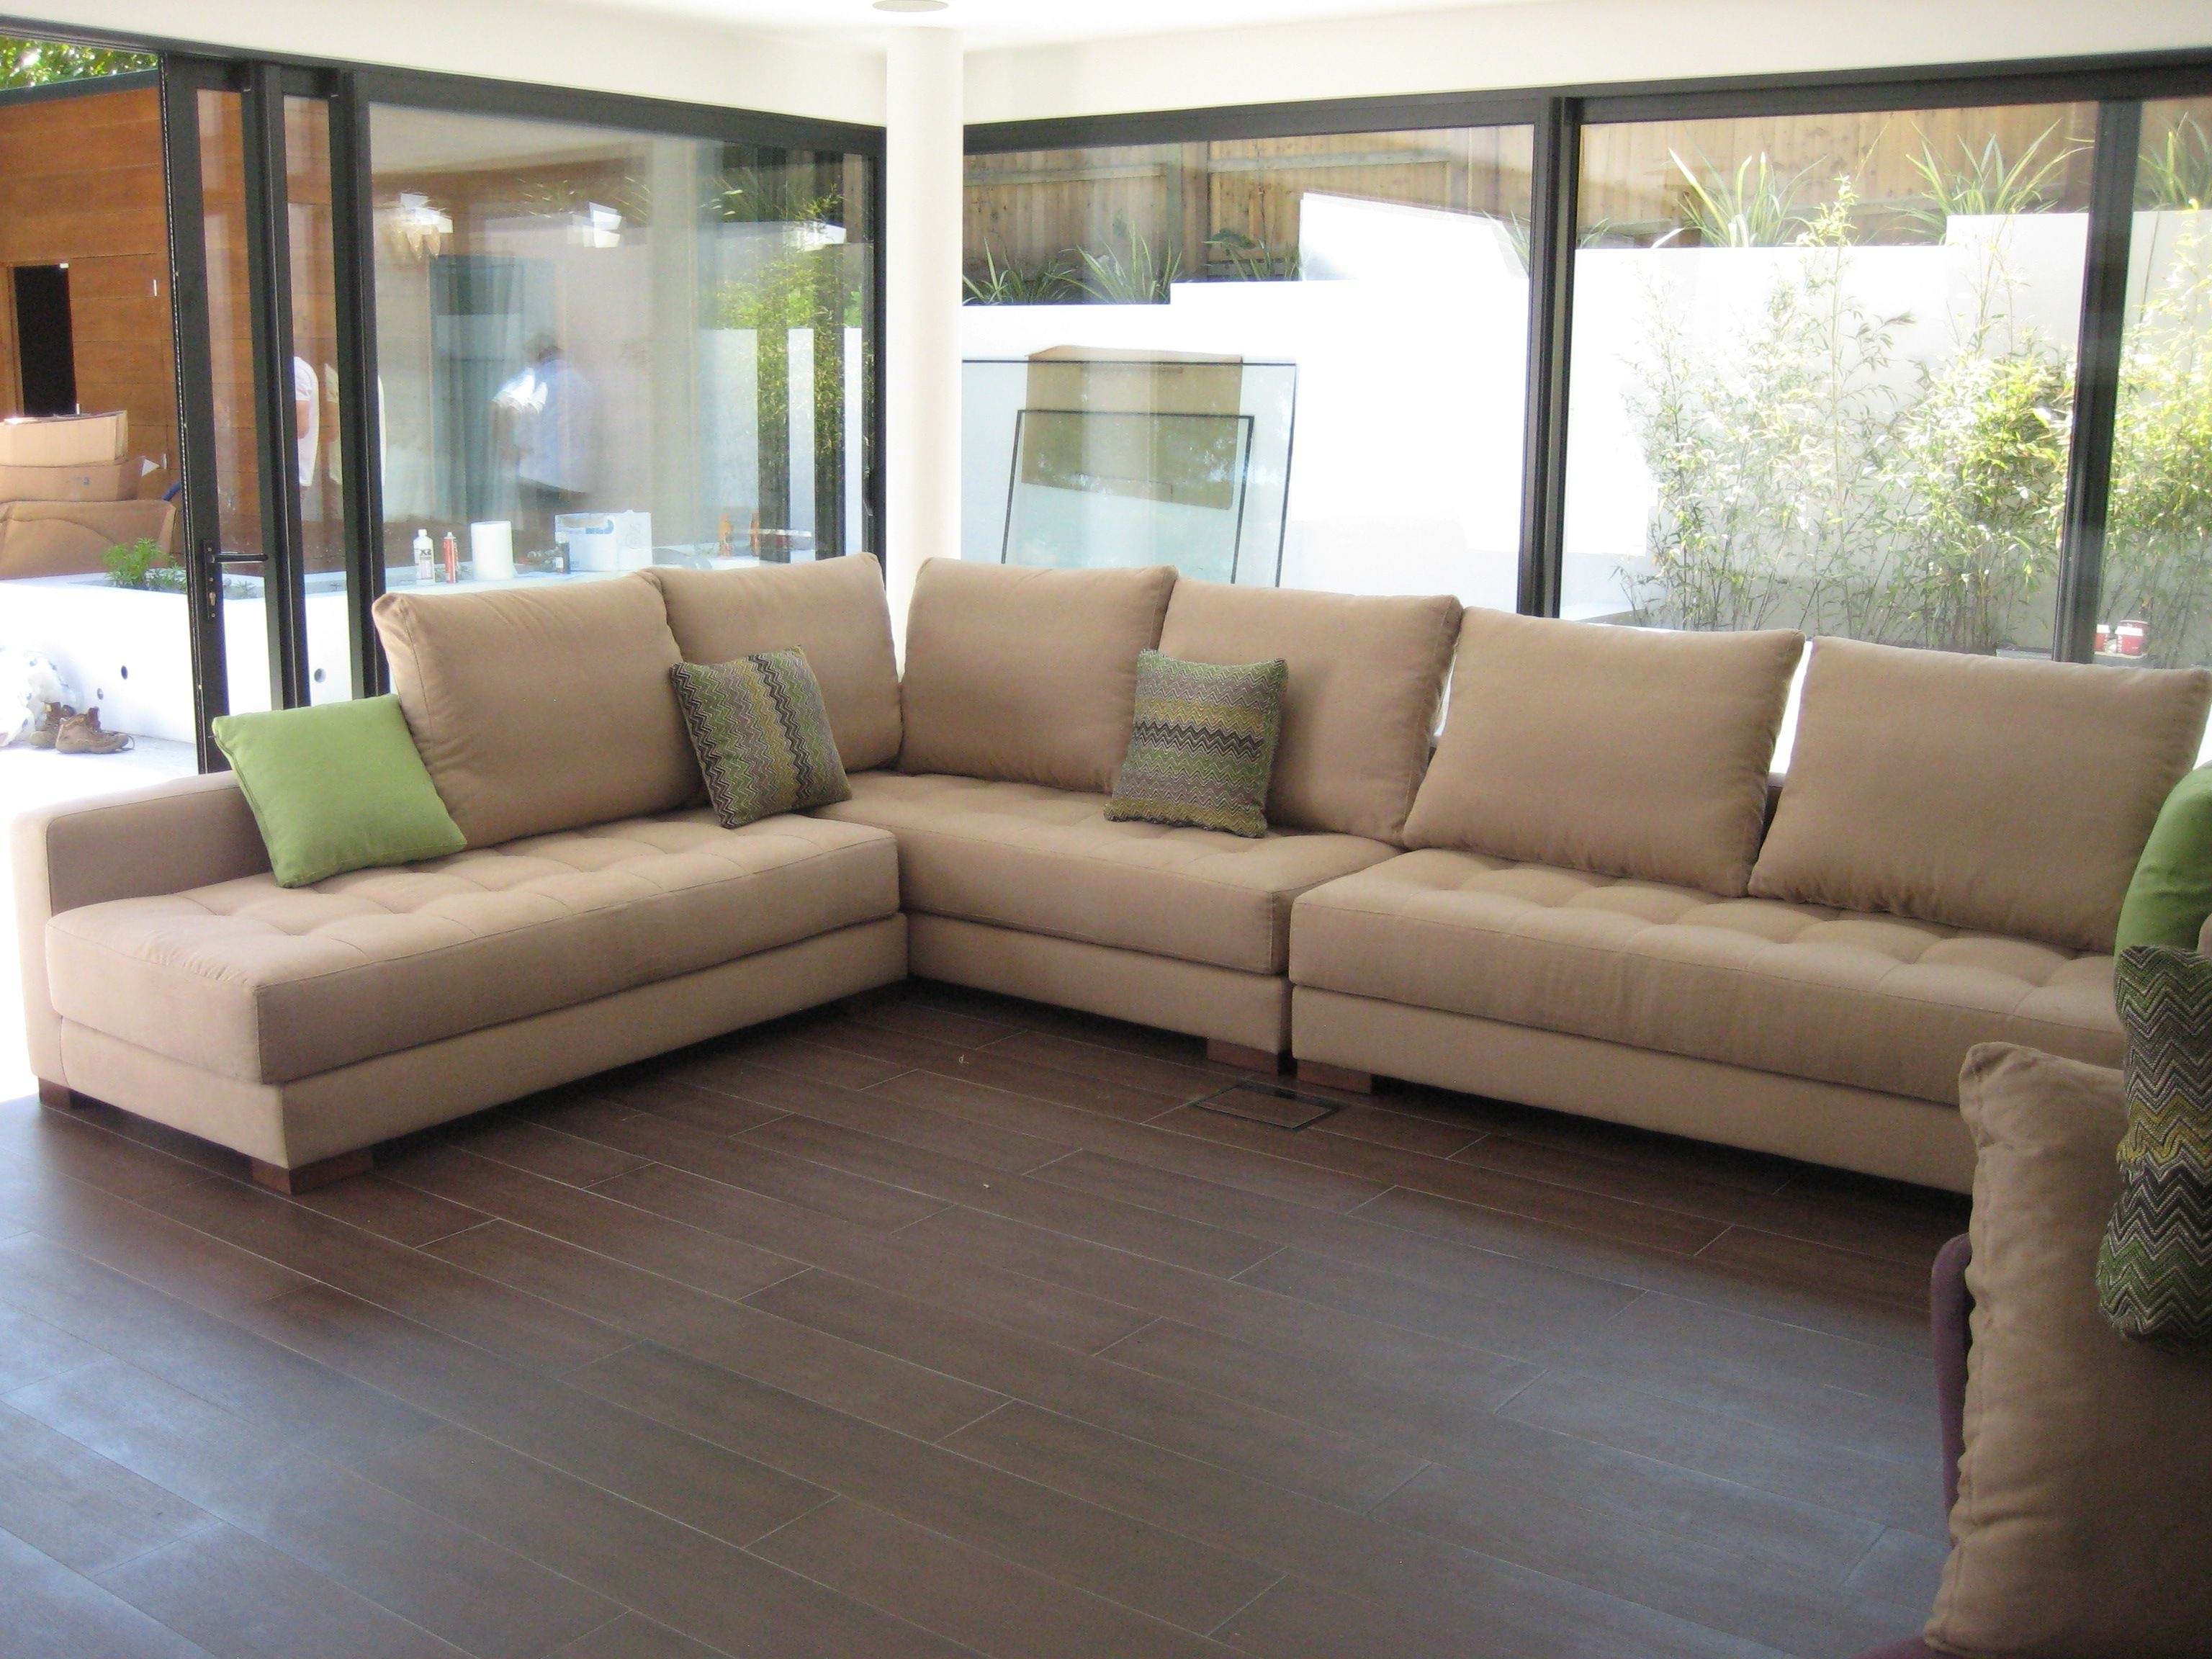 100X100 Sectional Sofas In Most Current Yecla Sectional Sofa Modules – In Romo Linara Fabrics (View 4 of 20)